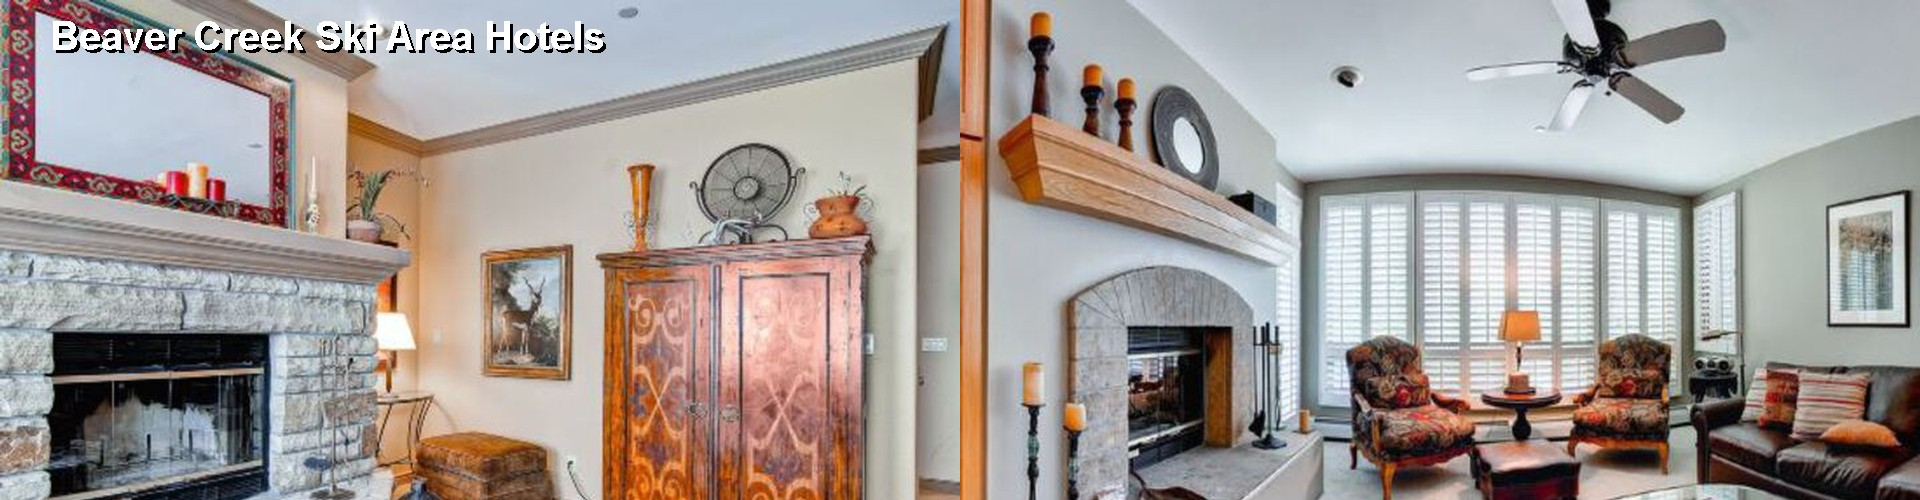 5 Best Hotels near Beaver Creek Ski Area